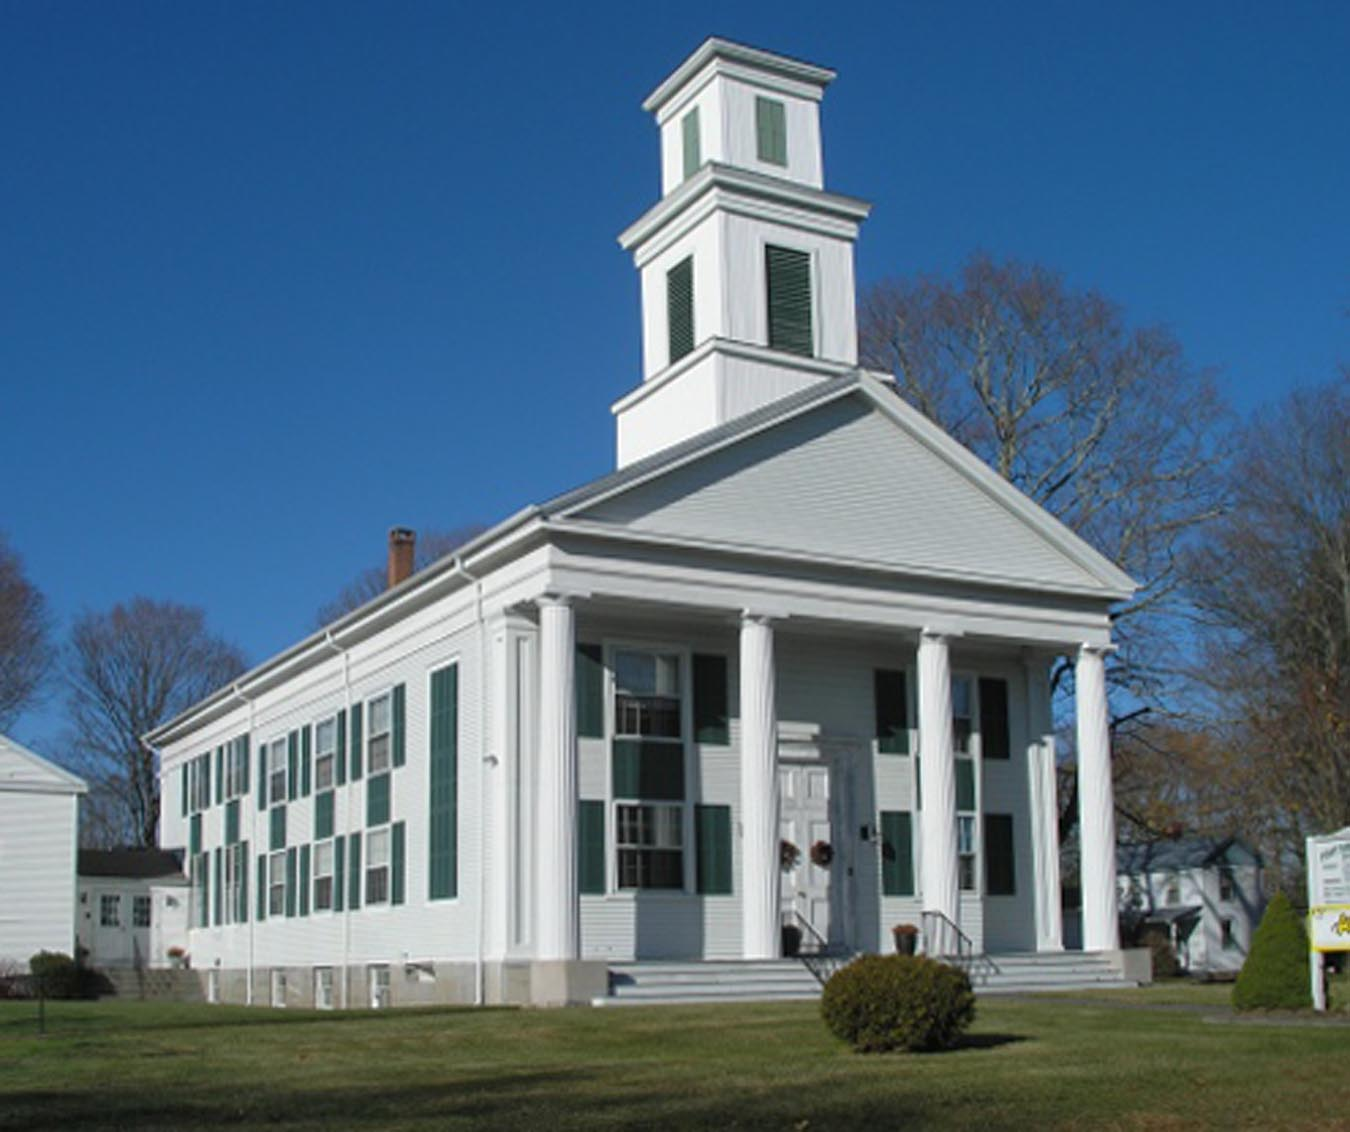 First Baptist Church of Waterford